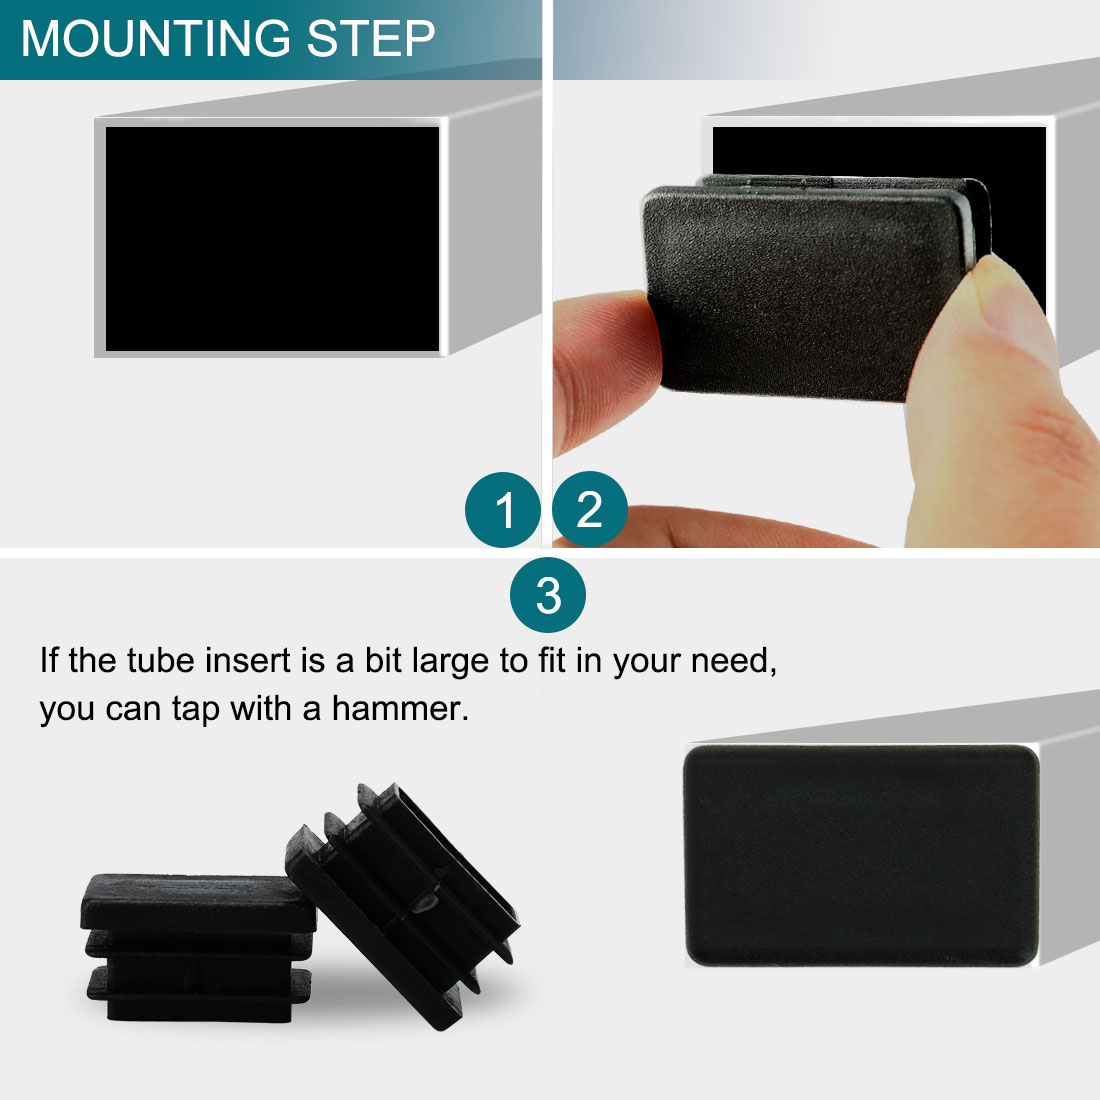 13 x 26mm Plastic Rectangle Ribbed Tube Inserts Table Feet Floor Protector 20pcs - image 2 of 7